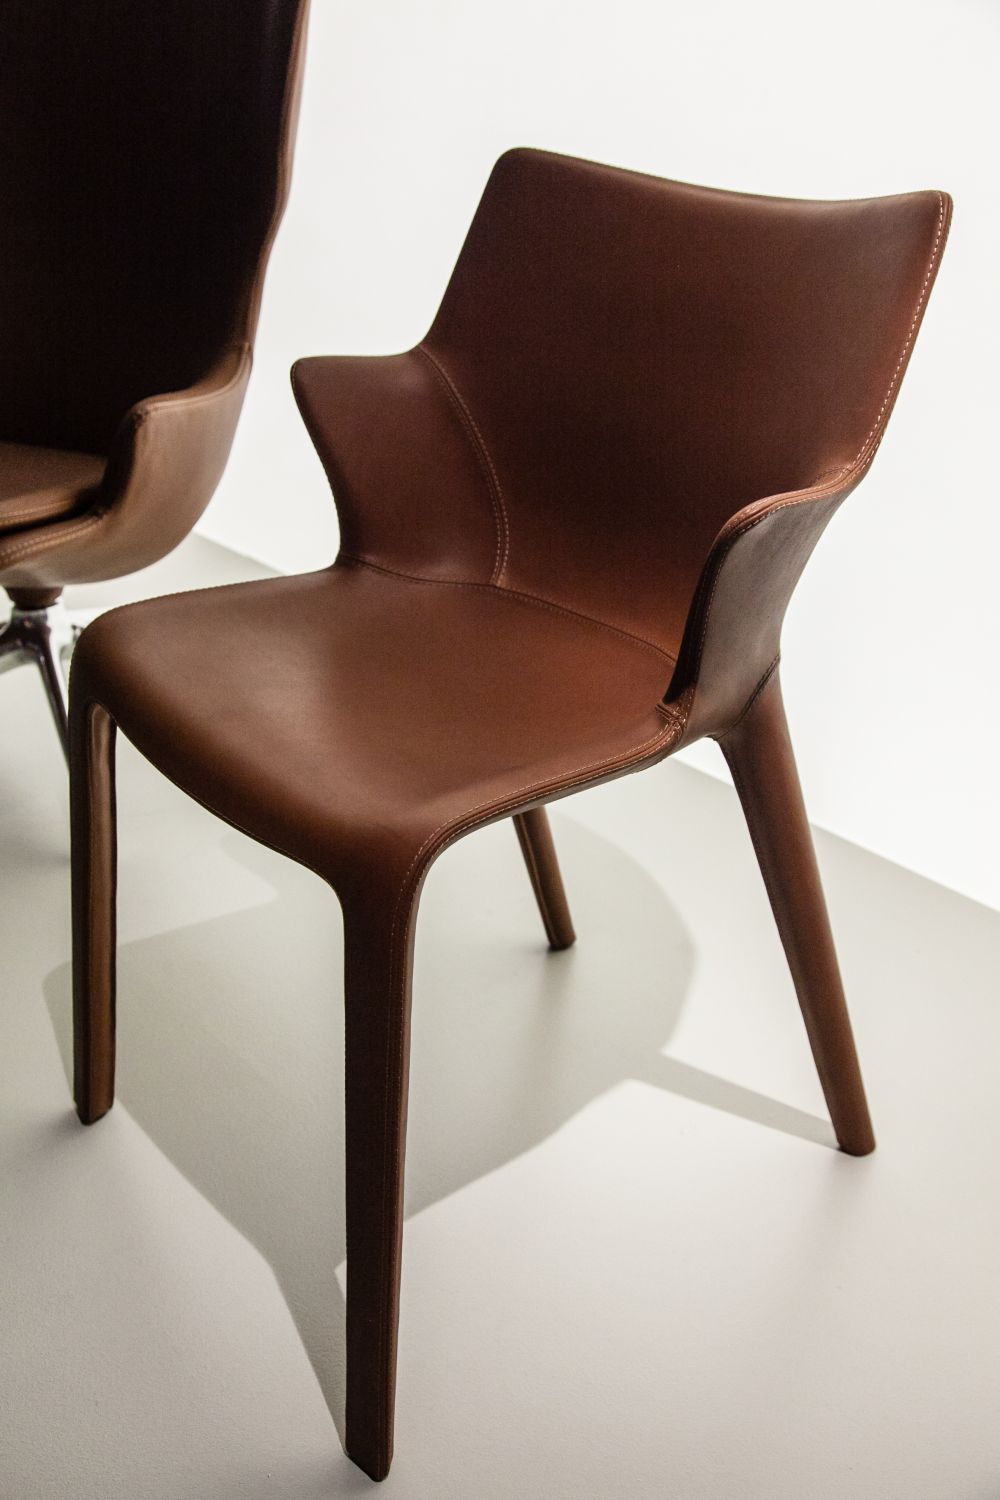 leather dining chairs ergonomic chair wiki prove elegance is timeless view in gallery